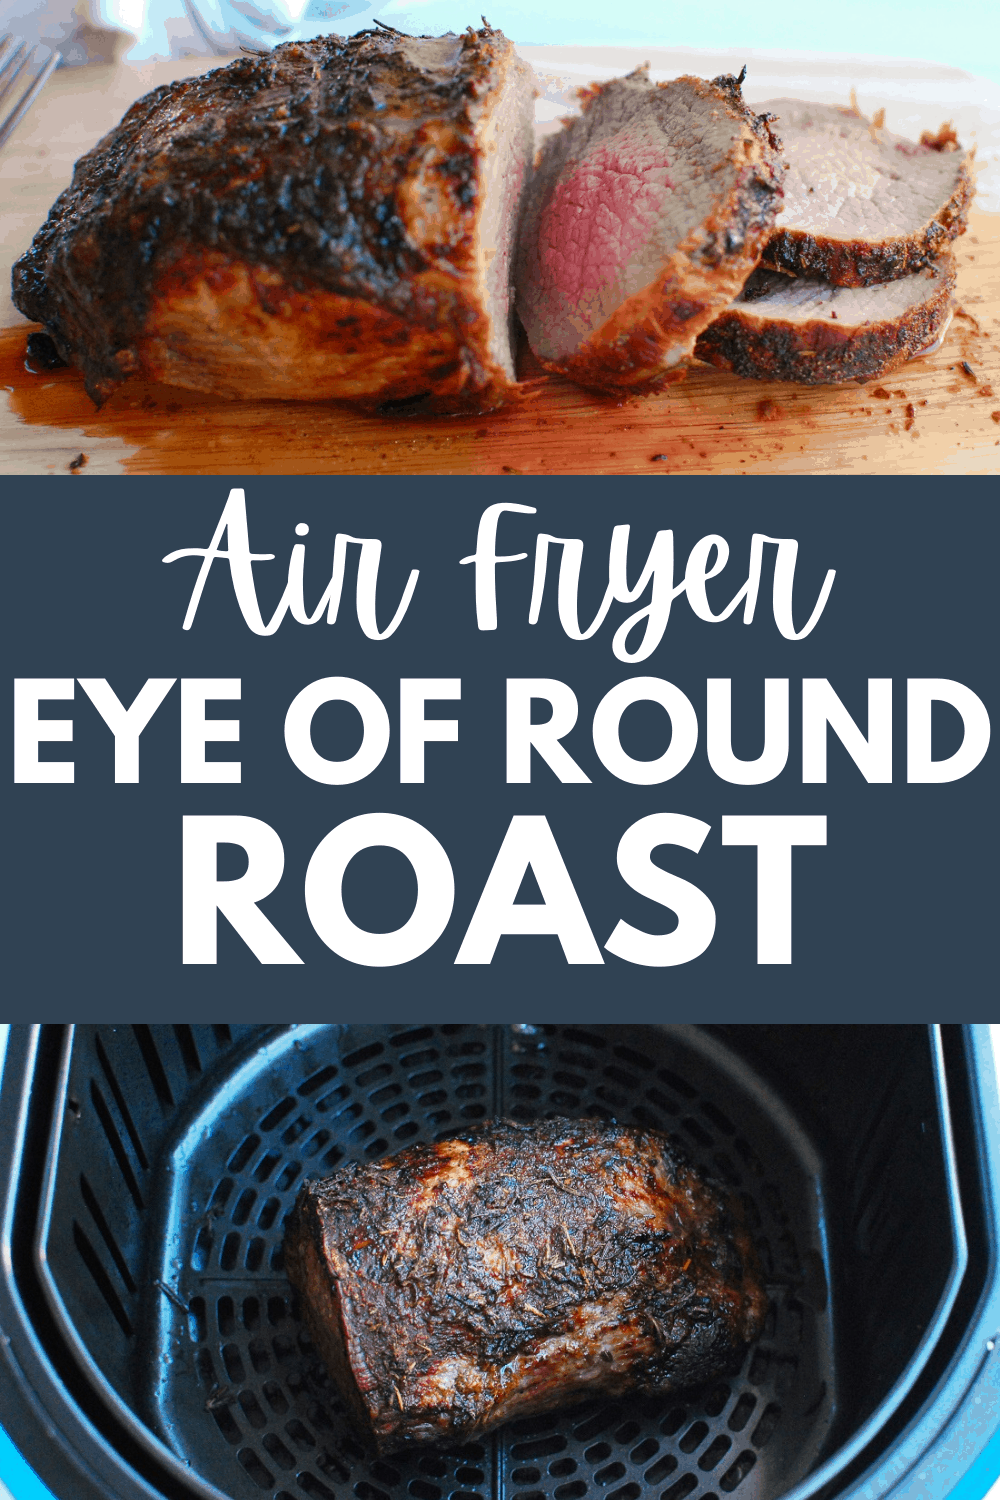 a collage of a roast in the air fryer and a roast on a cutting board, with a text overlay that says air fryer eye of round roast